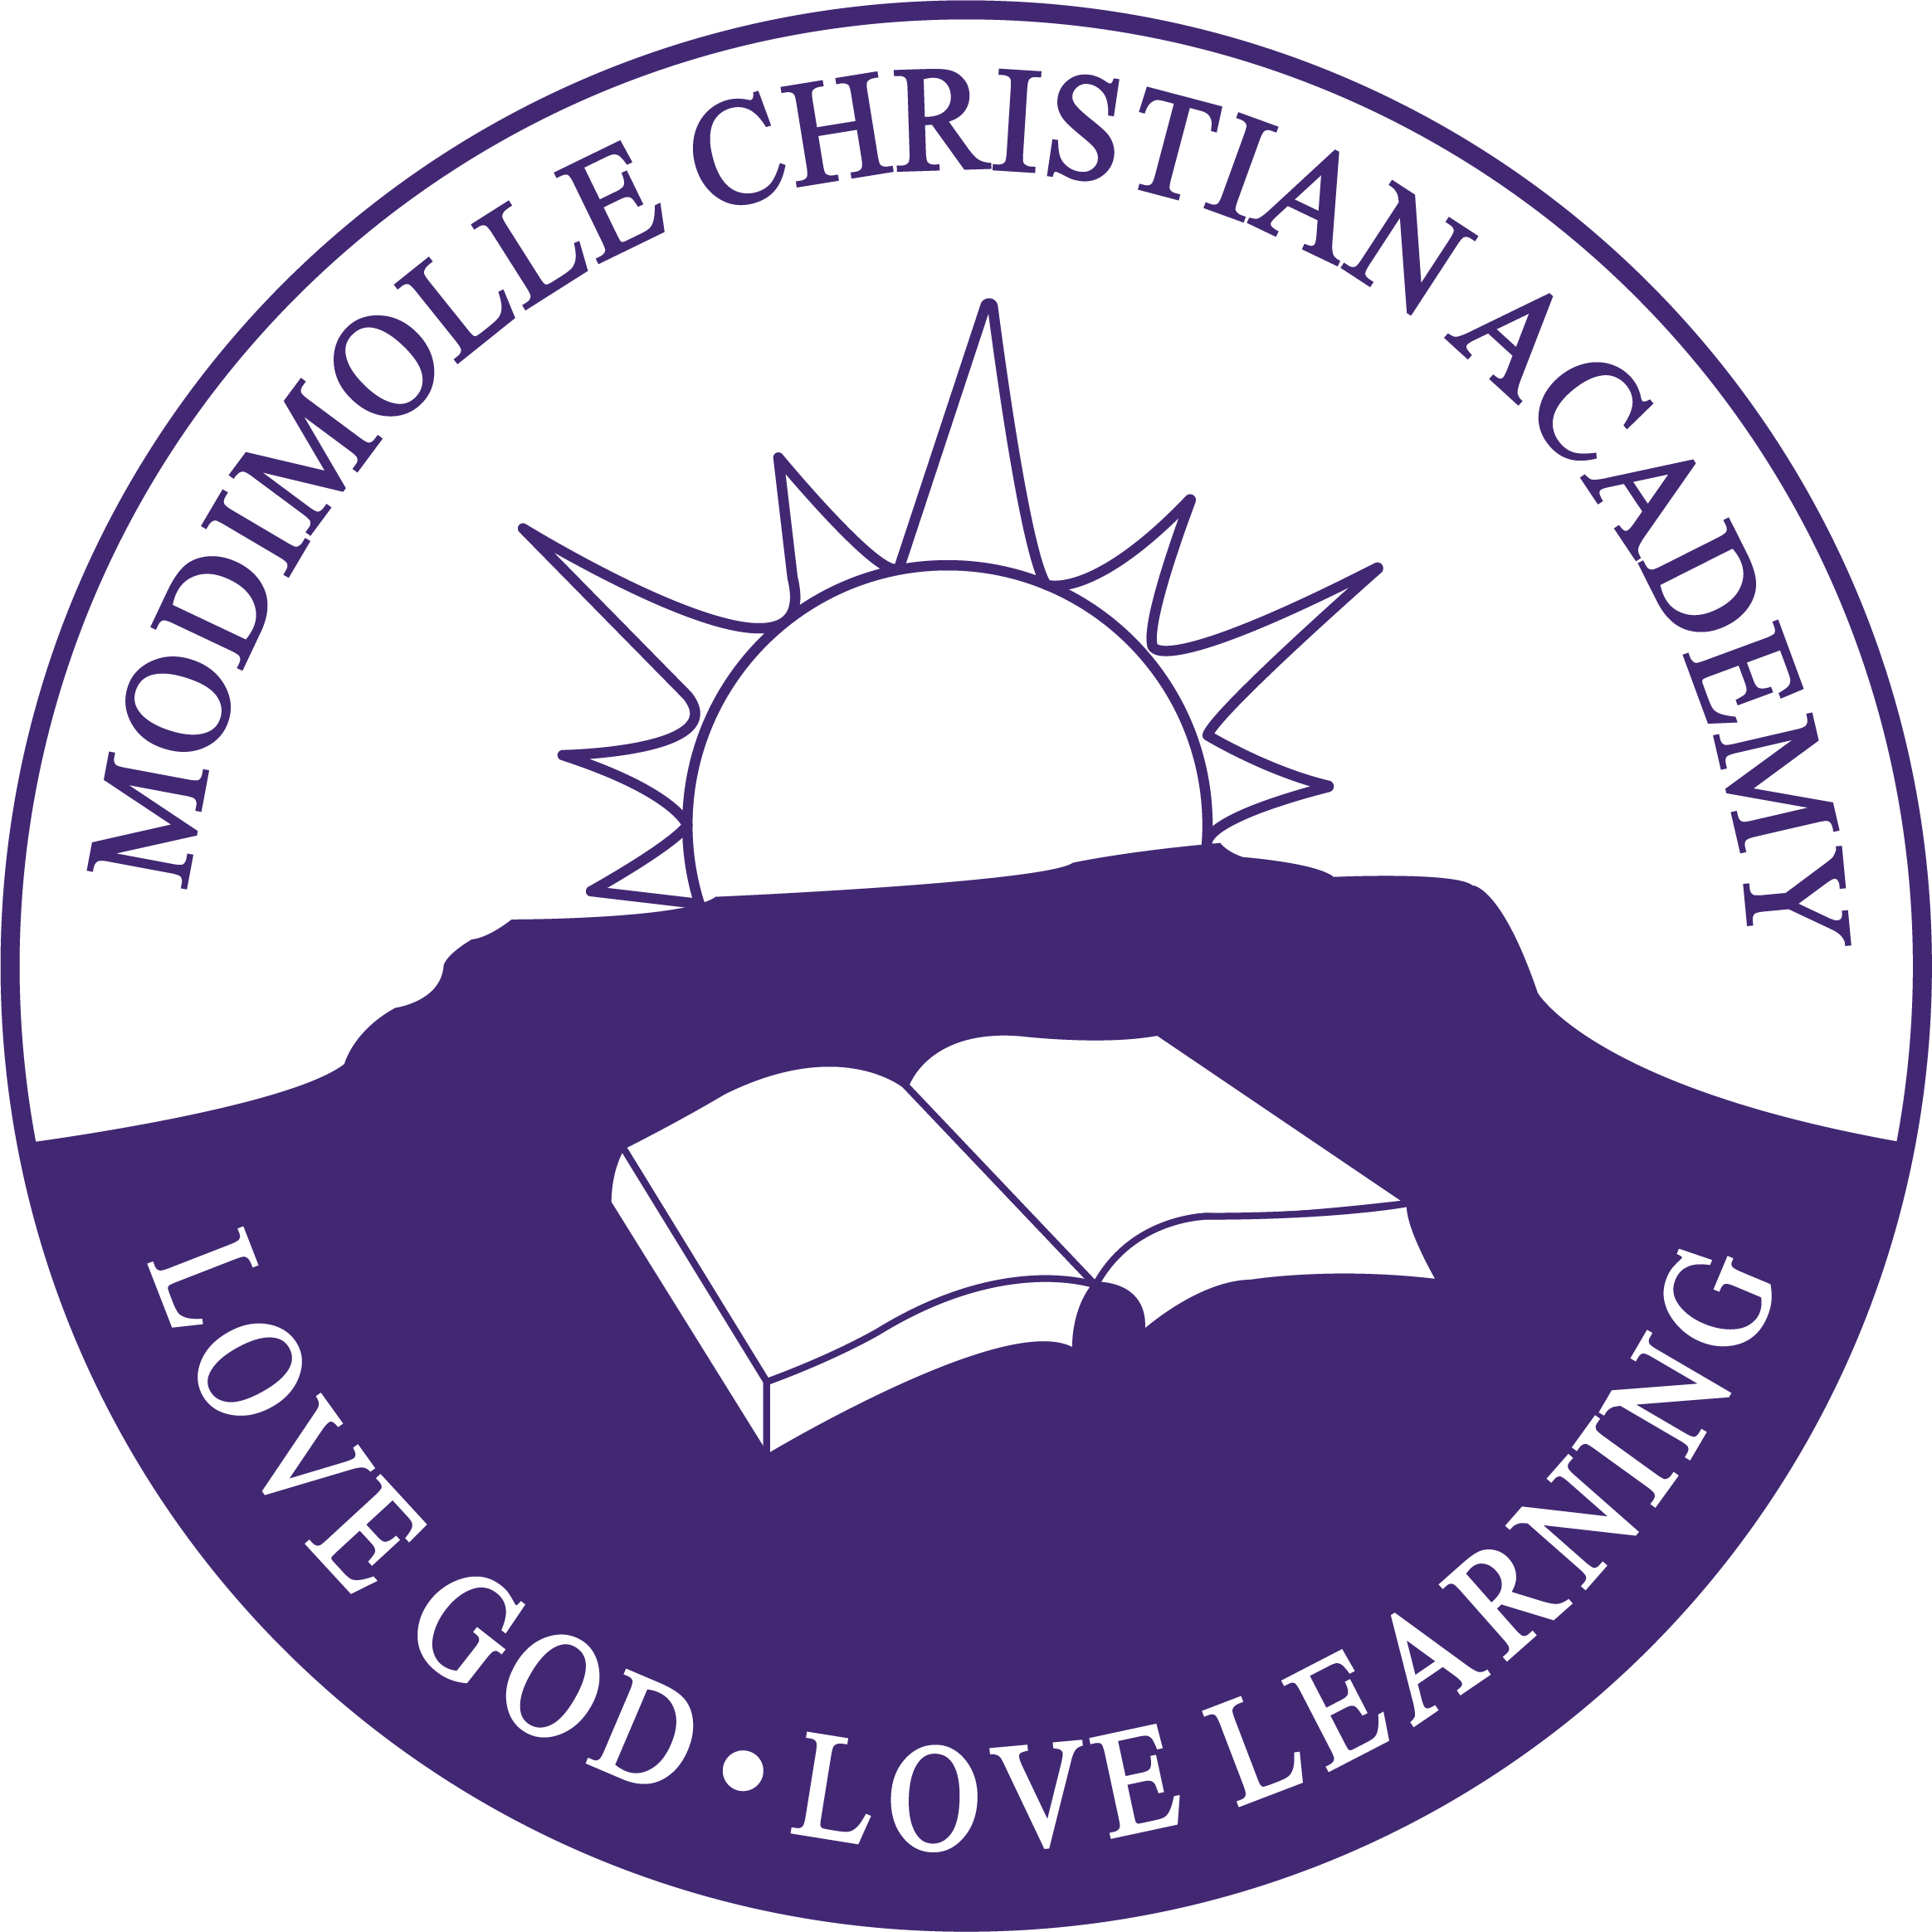 Modicademy Christian School - Modimolle (Nylstroom) Waterberg South Africa